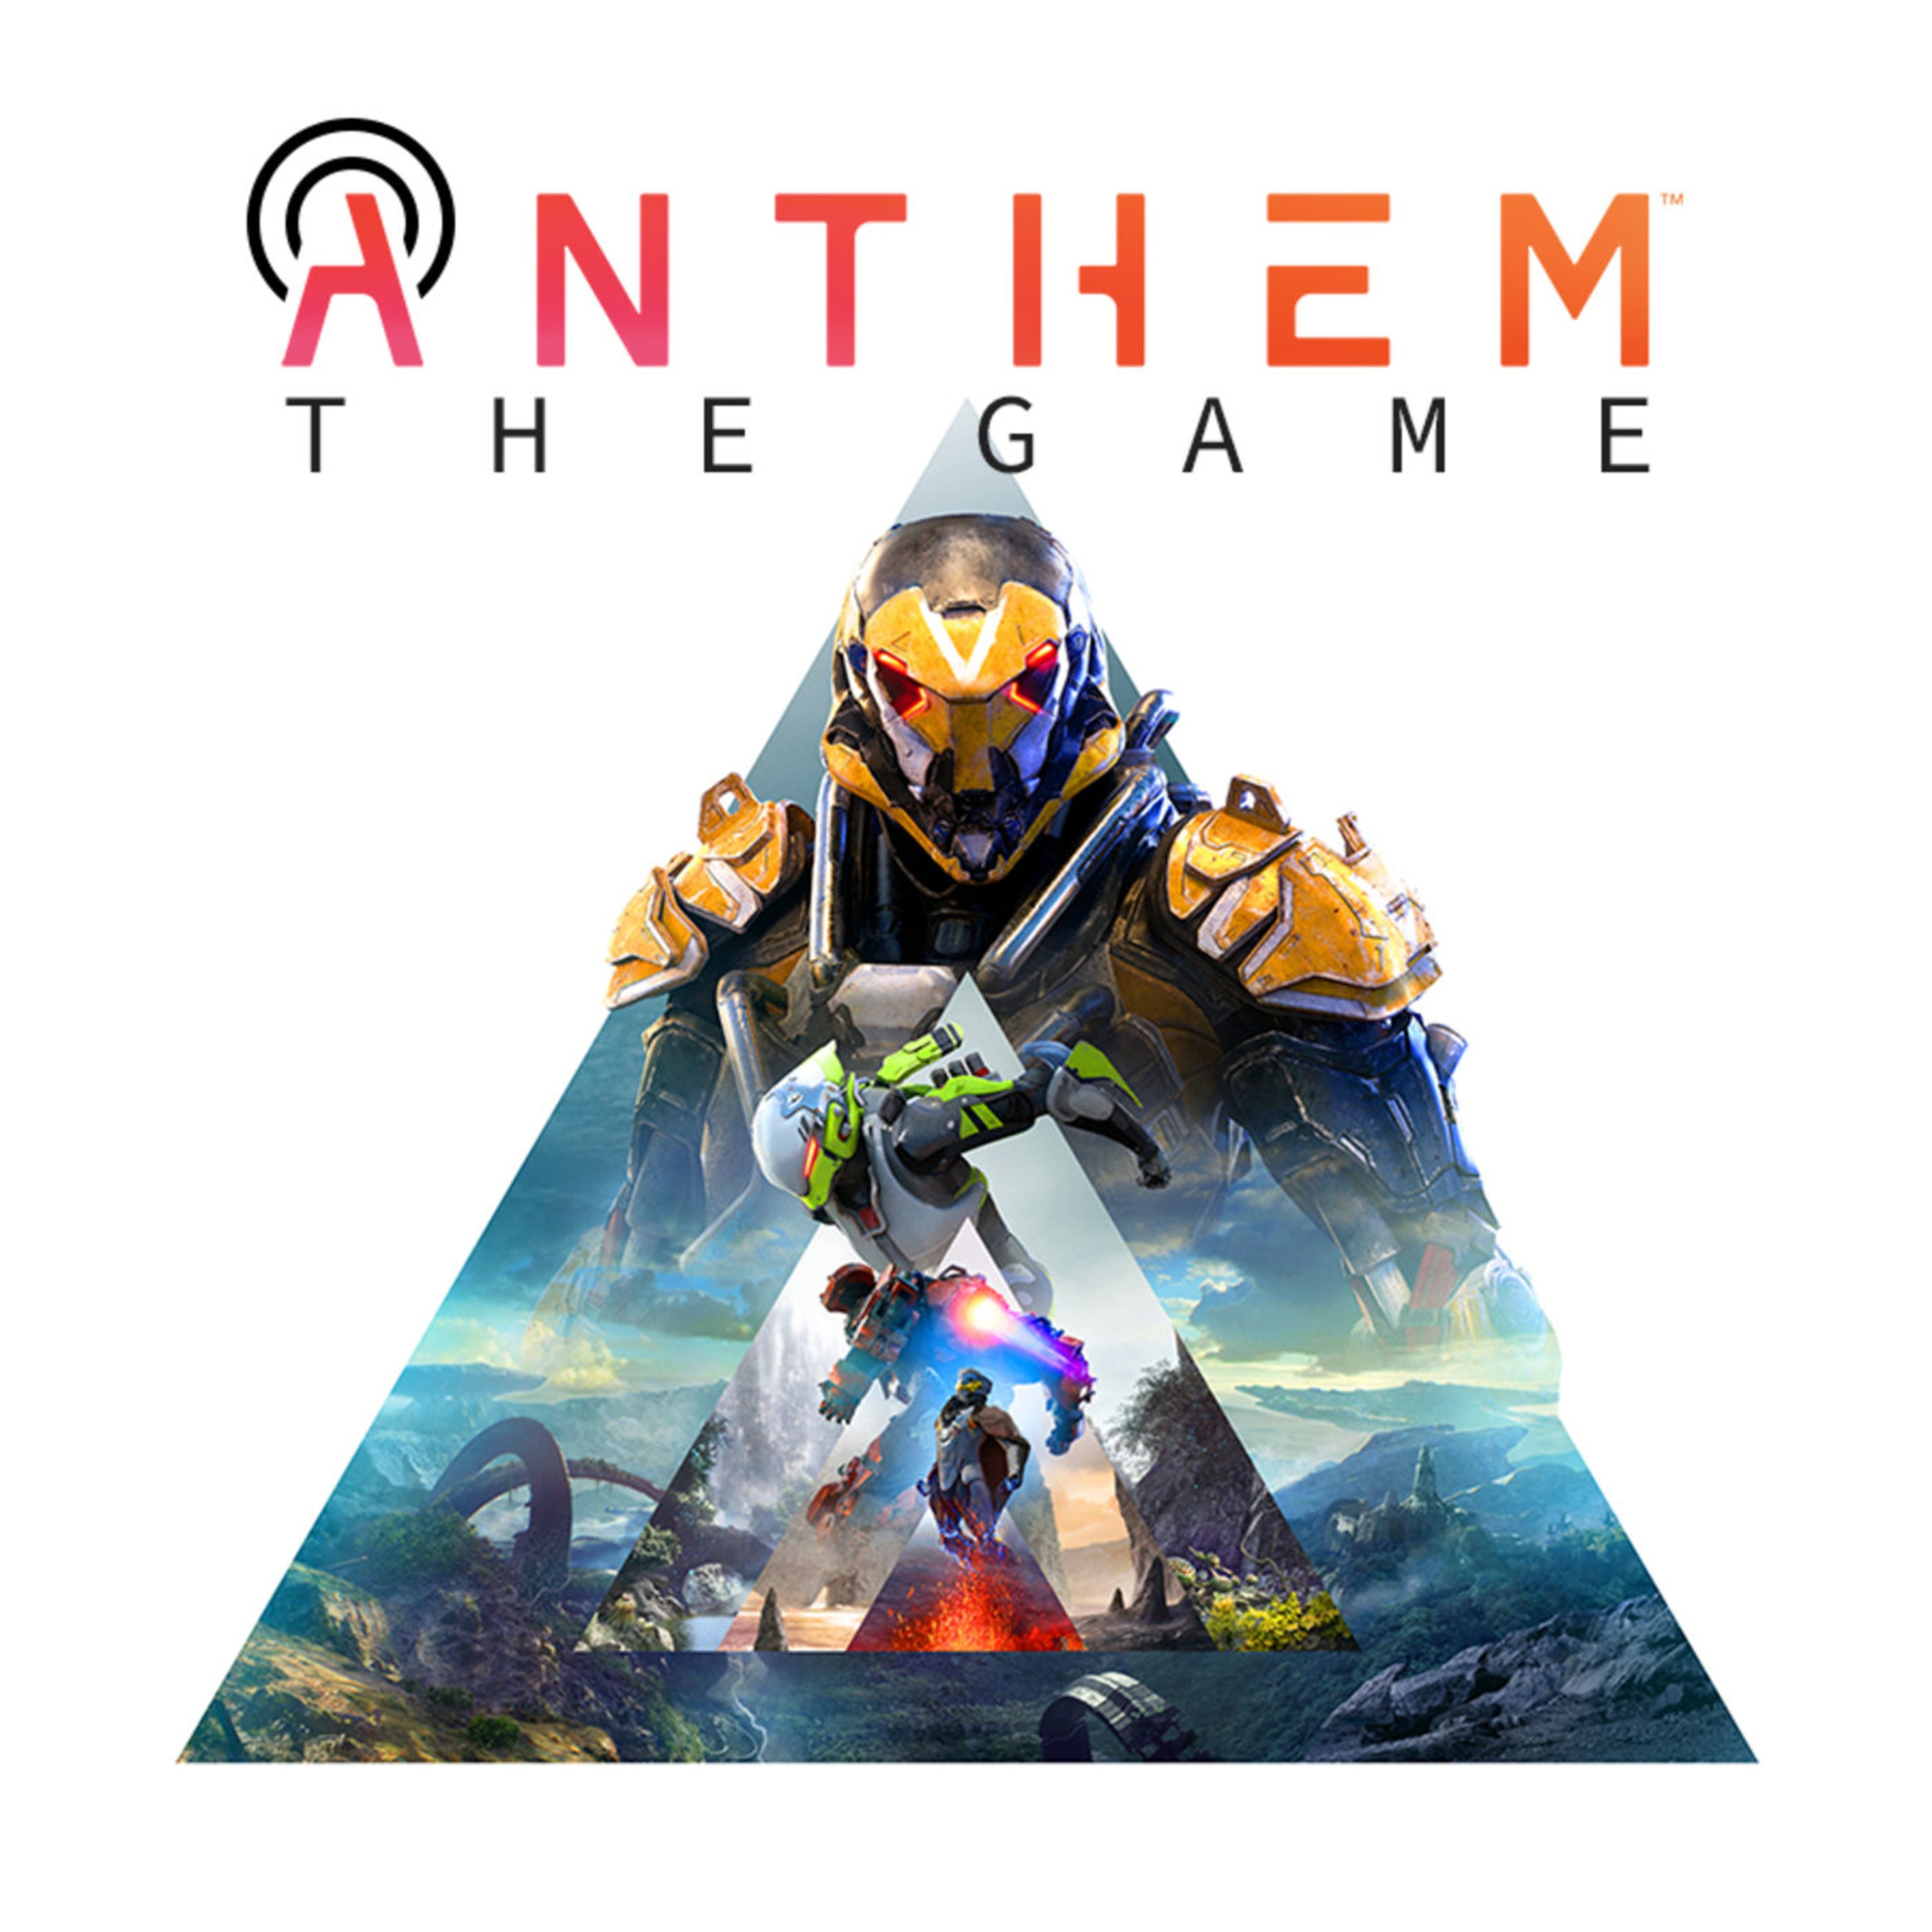 Ain't Nobody Got Time For That - Episode 9 - Anthem The Game